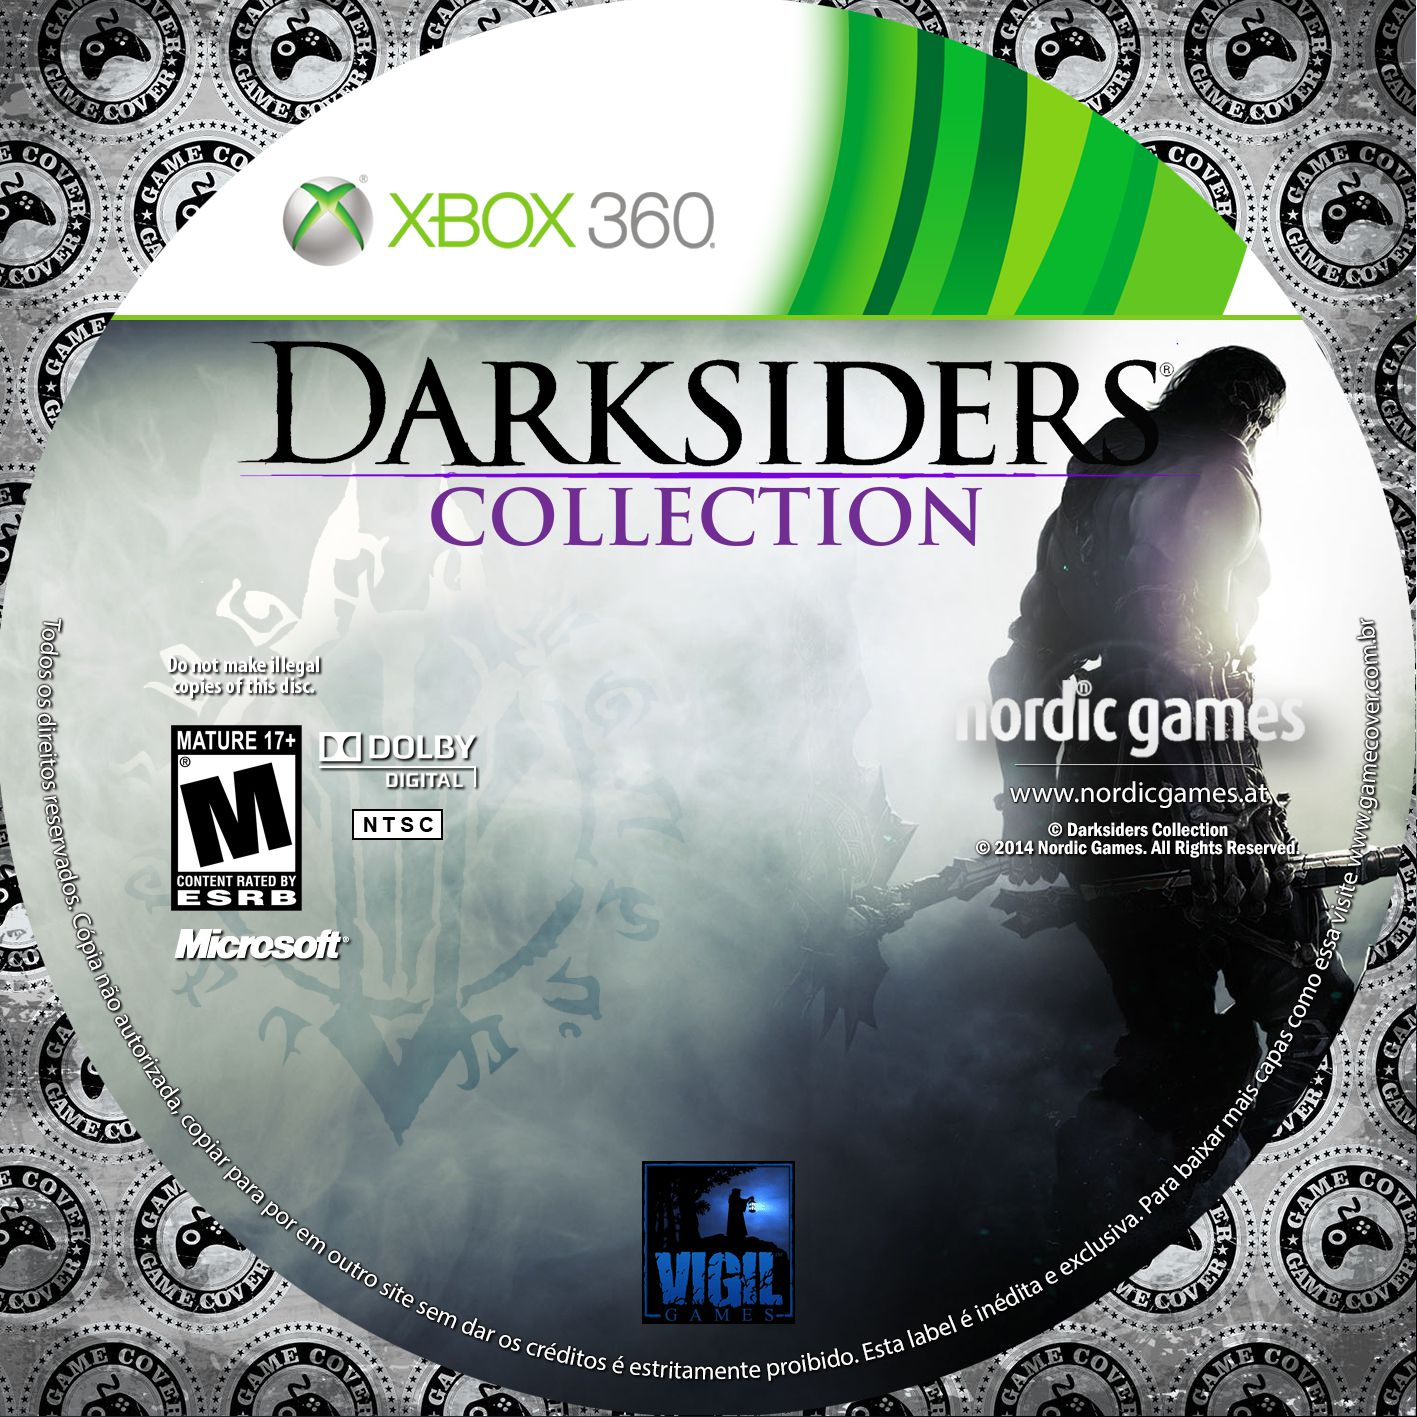 Label Darksiders Collection Xbox 360 [Exclusiva]